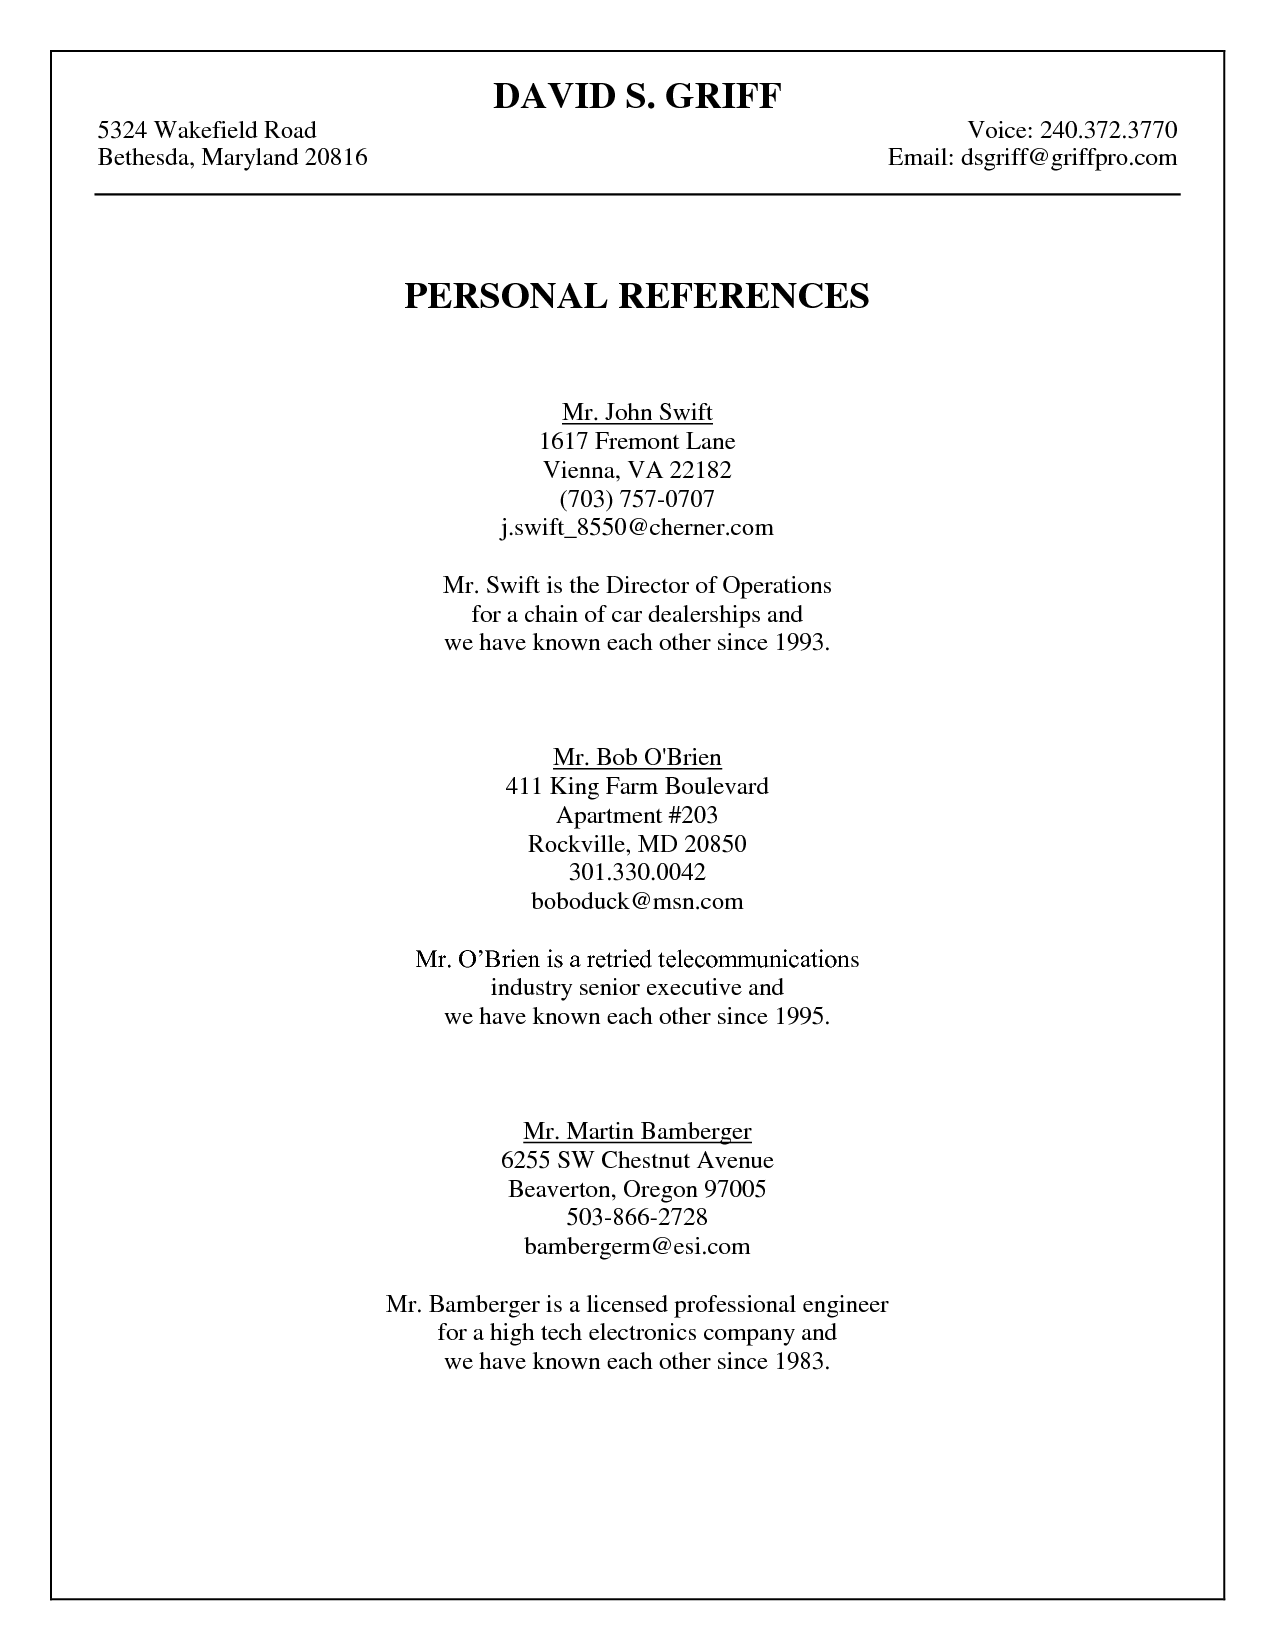 Personal Reference List - FREE DOWNLOAD